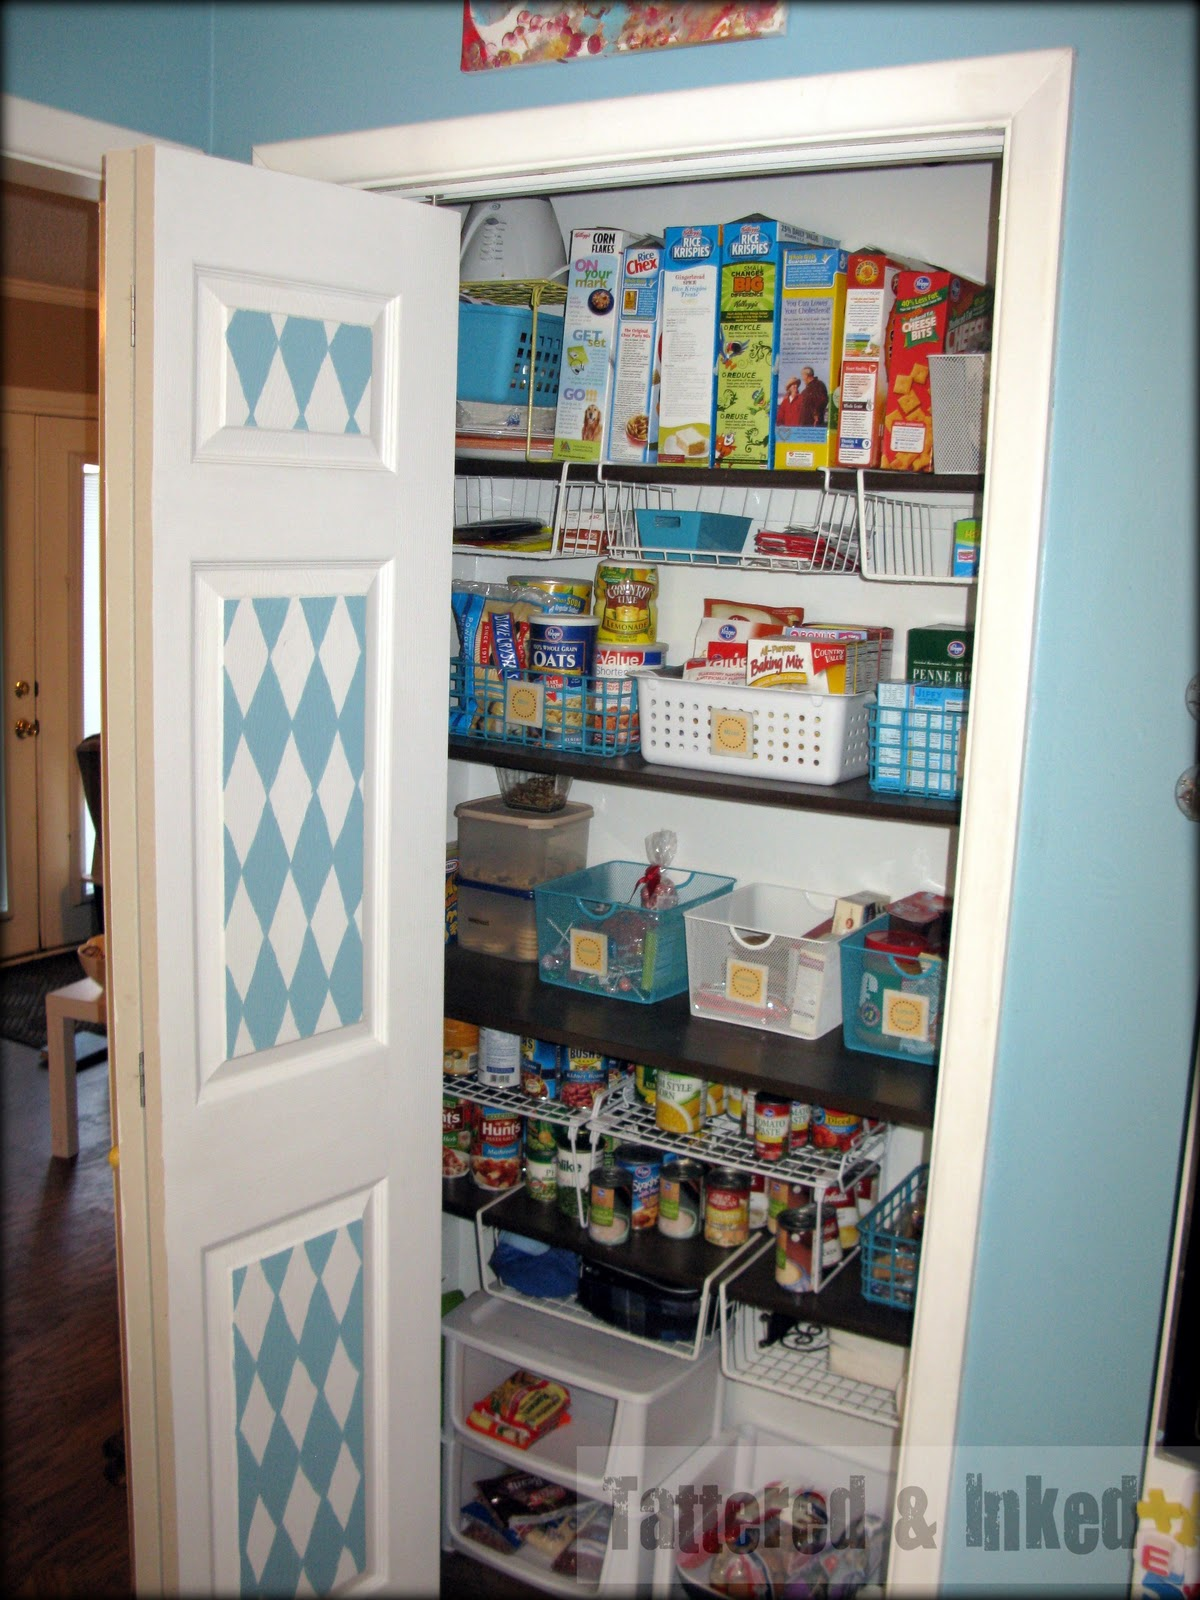 Tattered And Inked: Taking On The Chaos Inside My Pantry